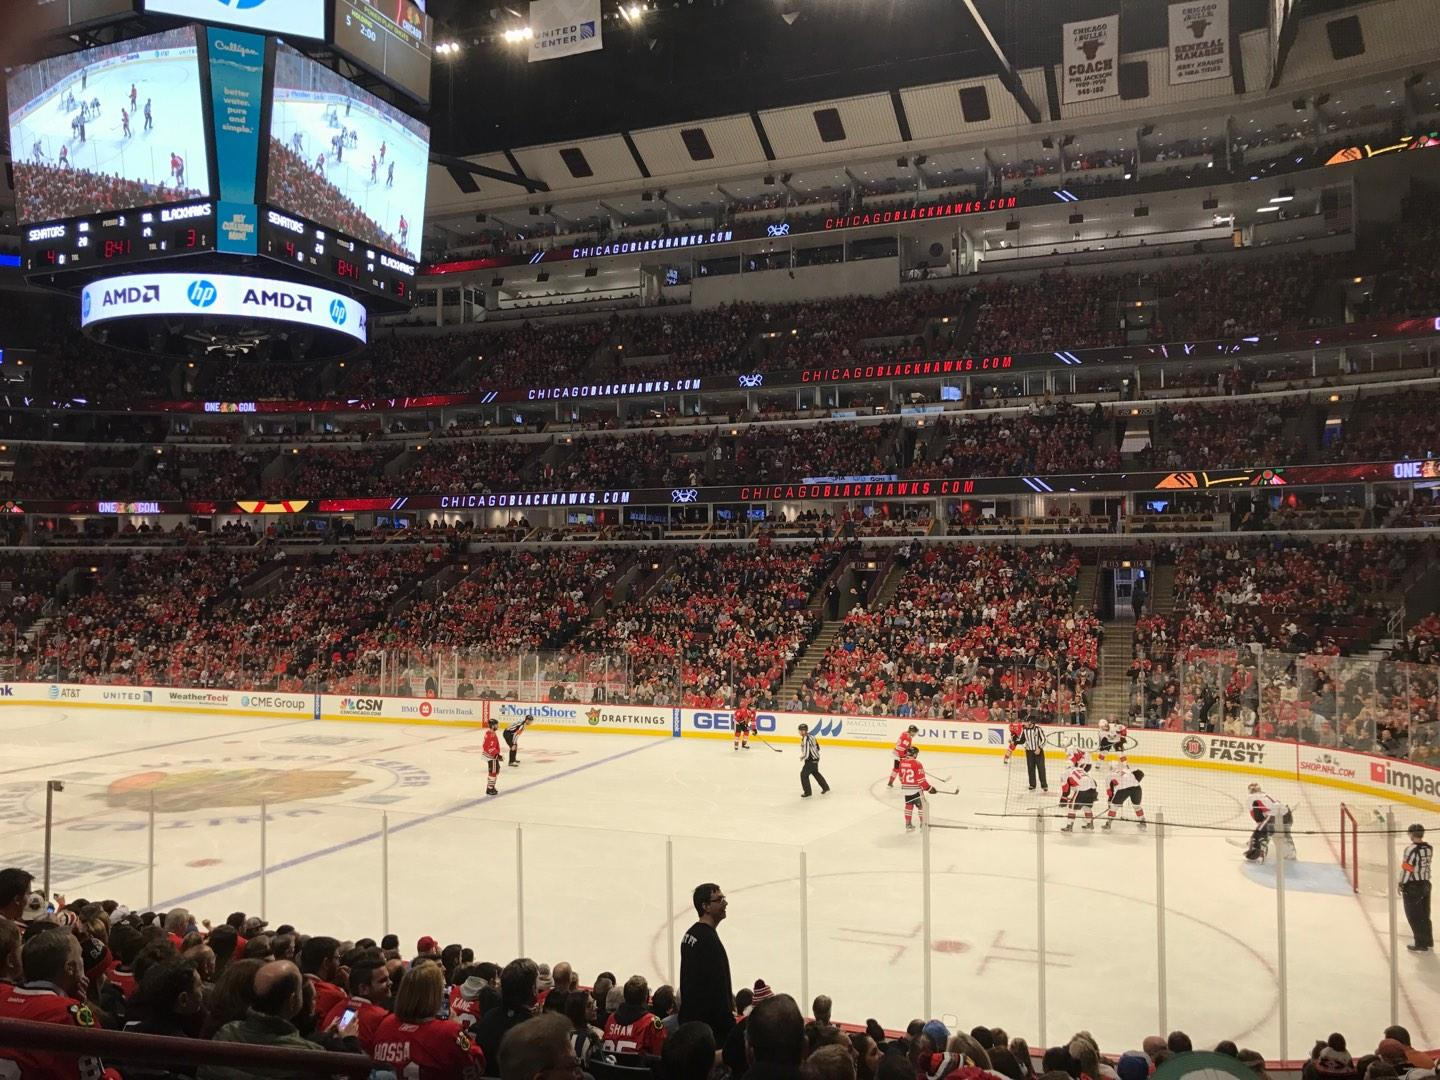 United Center Section 120 Row 15 Seat 12